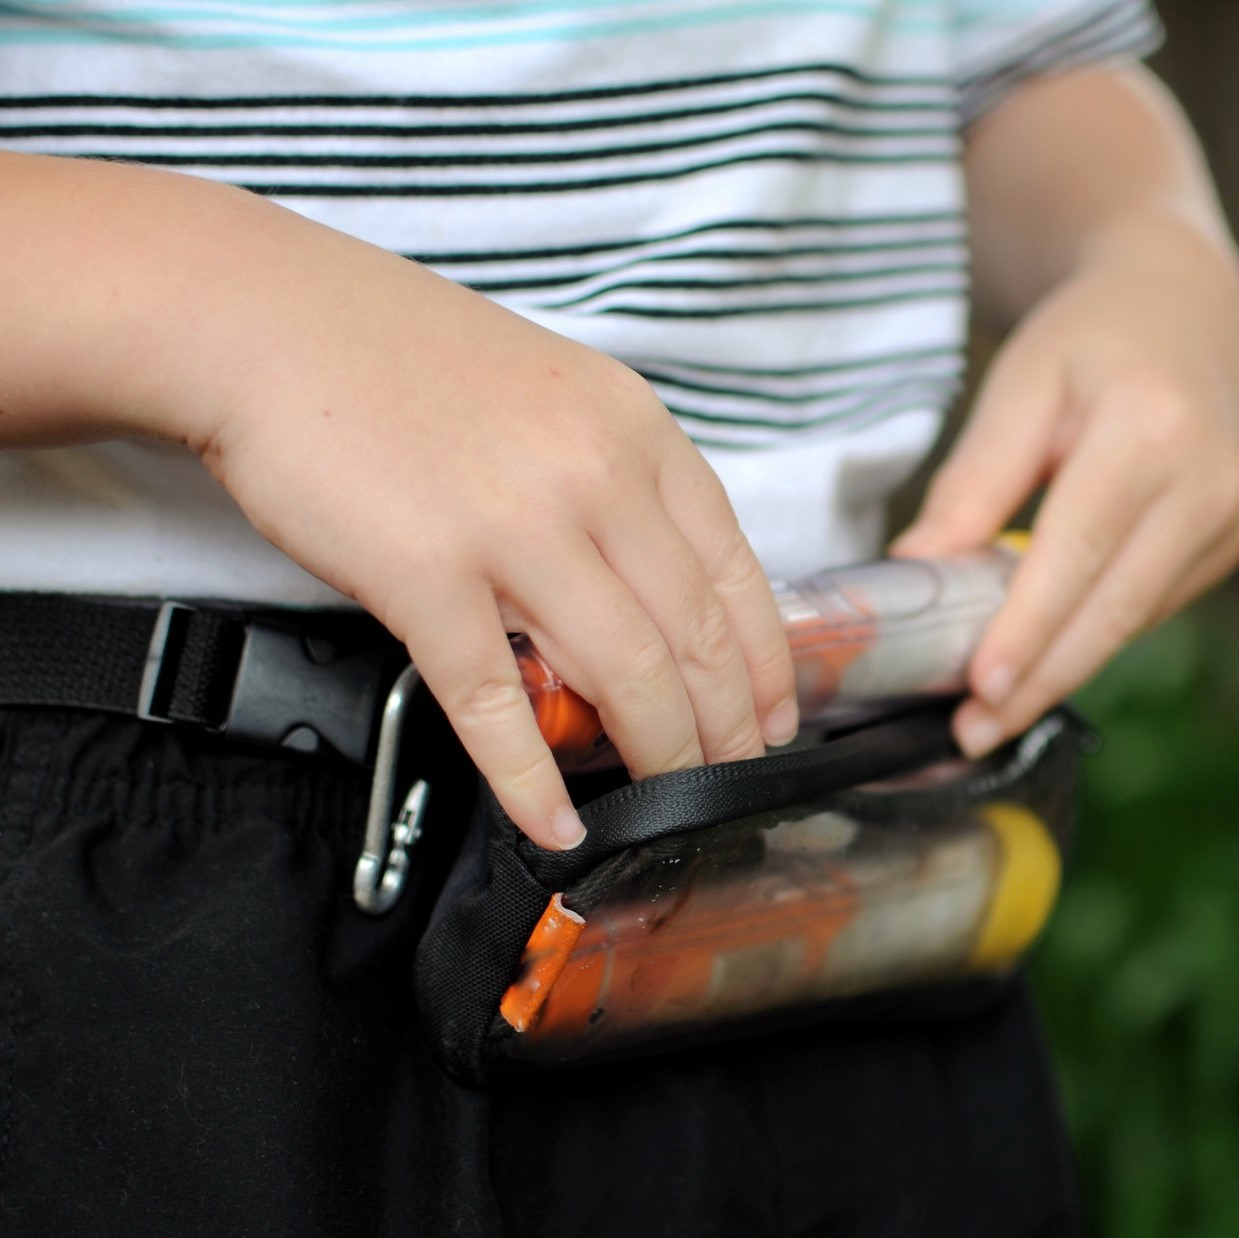 Two anaphylaxis Auto injectors in small pouch. Carry case is being worn by a child who is removing one injector from the case.